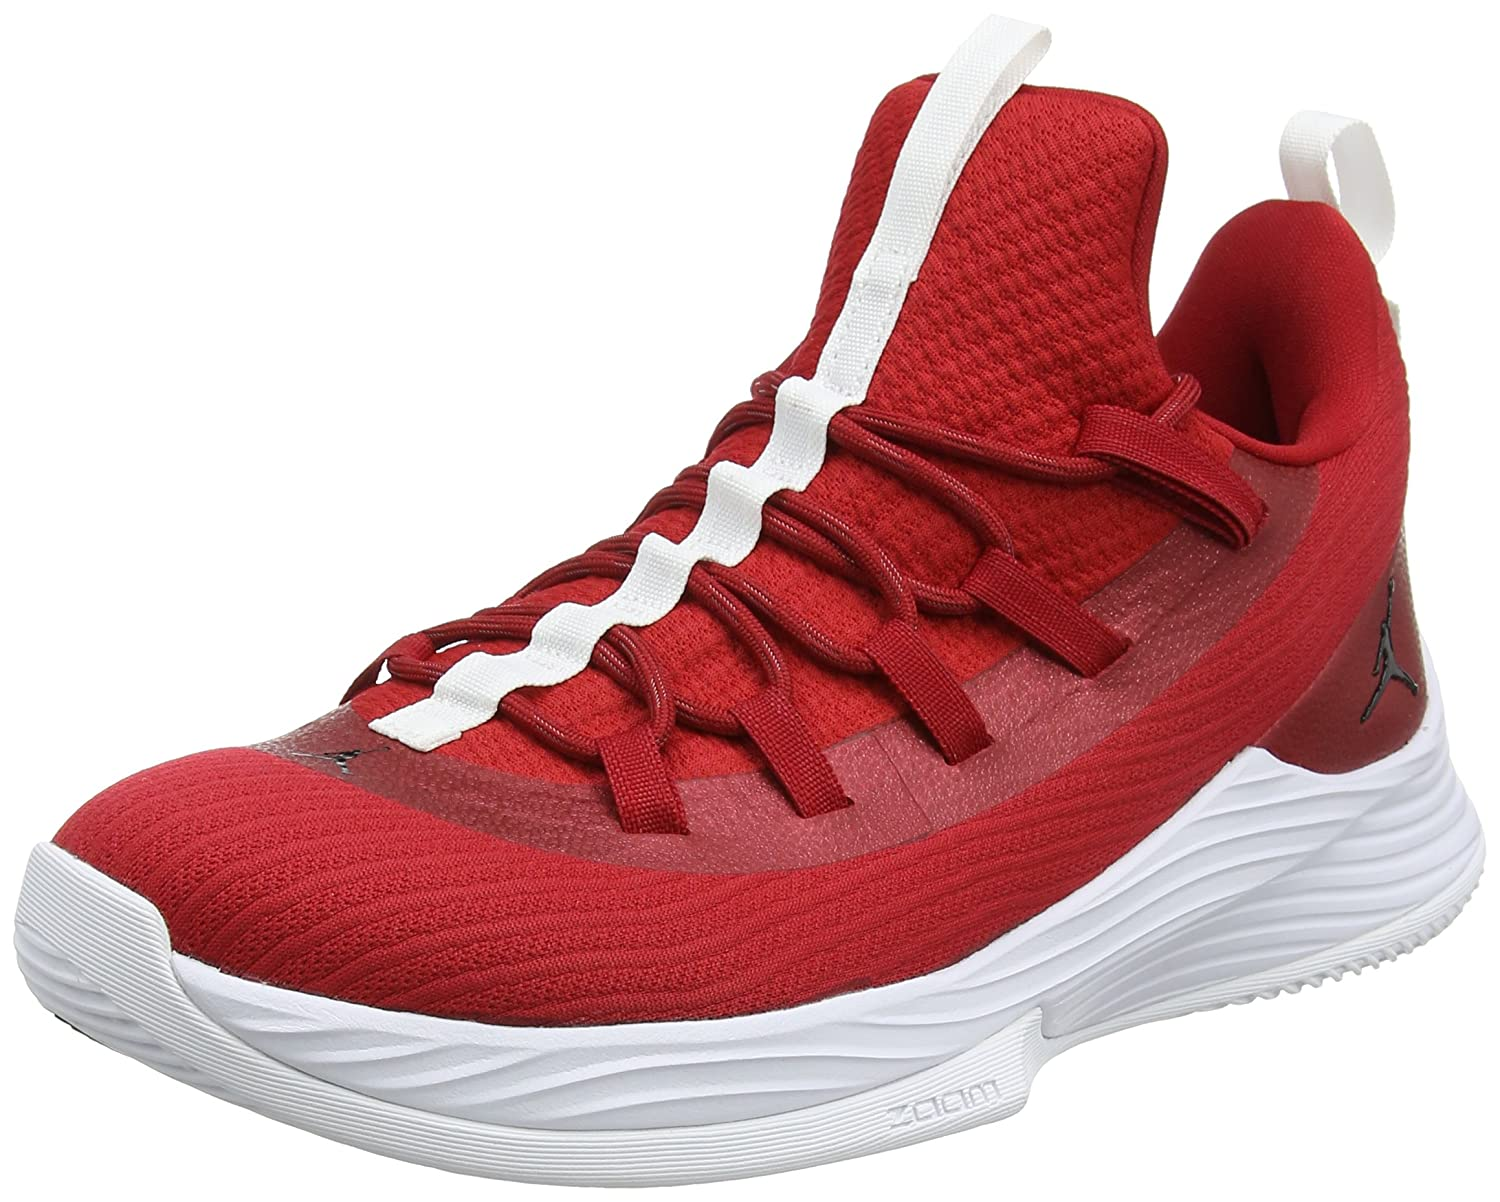 2d0742926cc Nike Men's Jordan Ultra Fly 2 Low Basketball Shoes: Amazon.co.uk: Shoes &  Bags